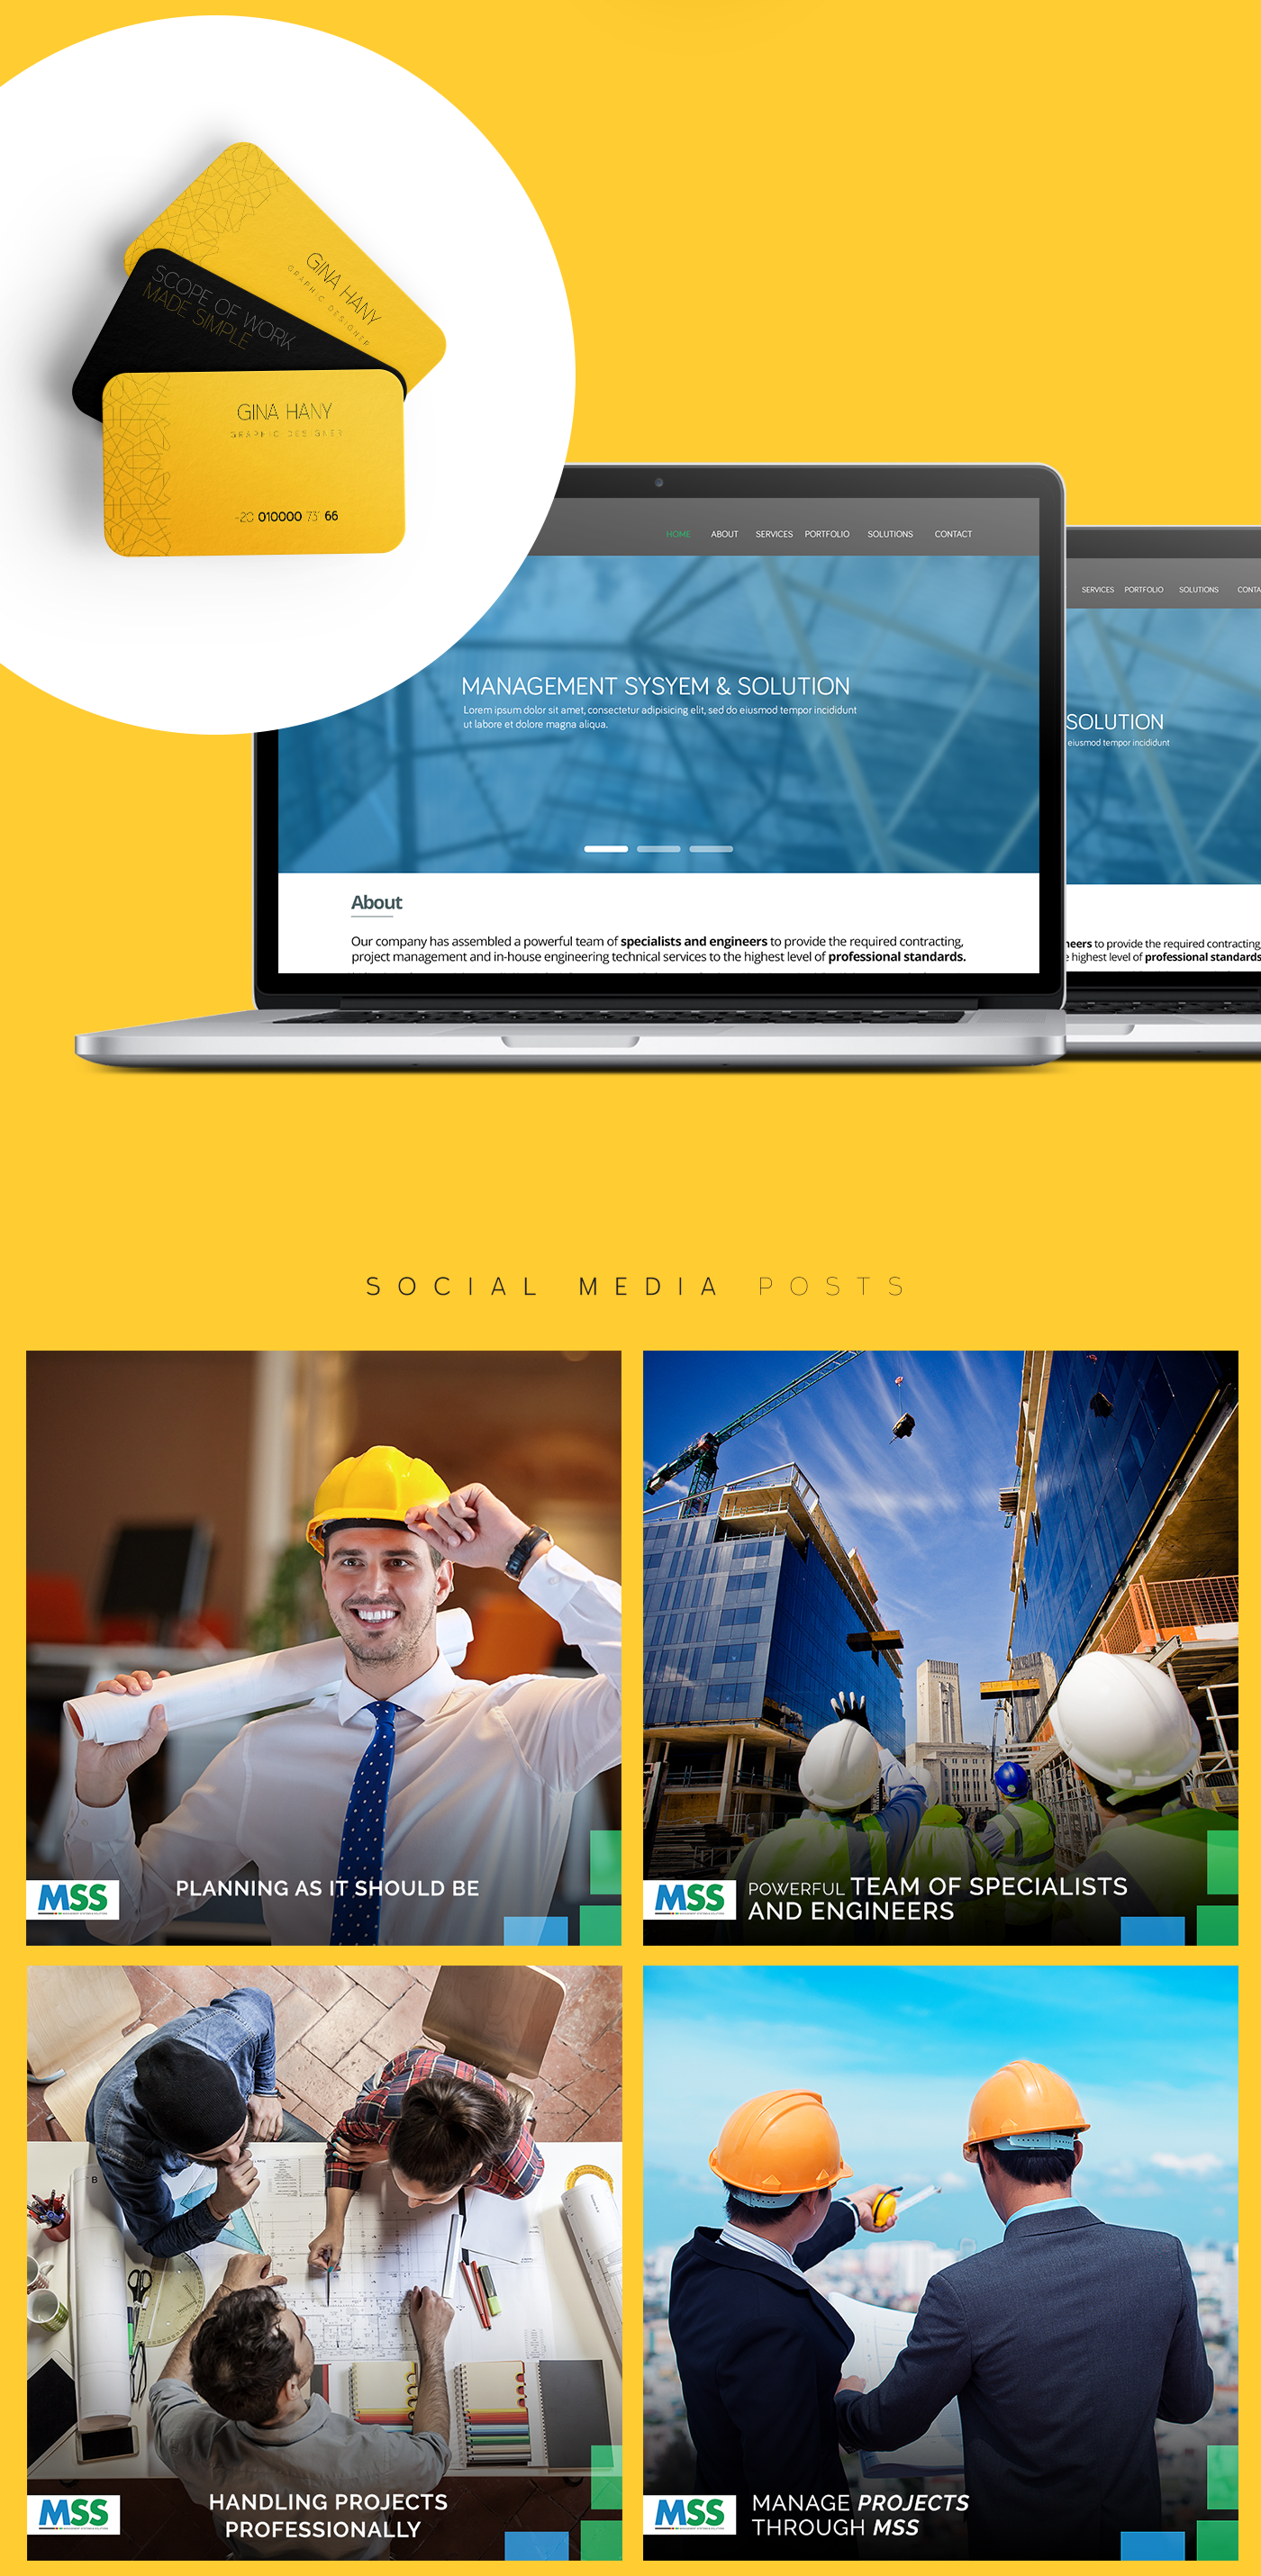 mss MSS is a specialized management firm that is assembled of a powerful of specialists and engineers to provide the required contracting Project Management and